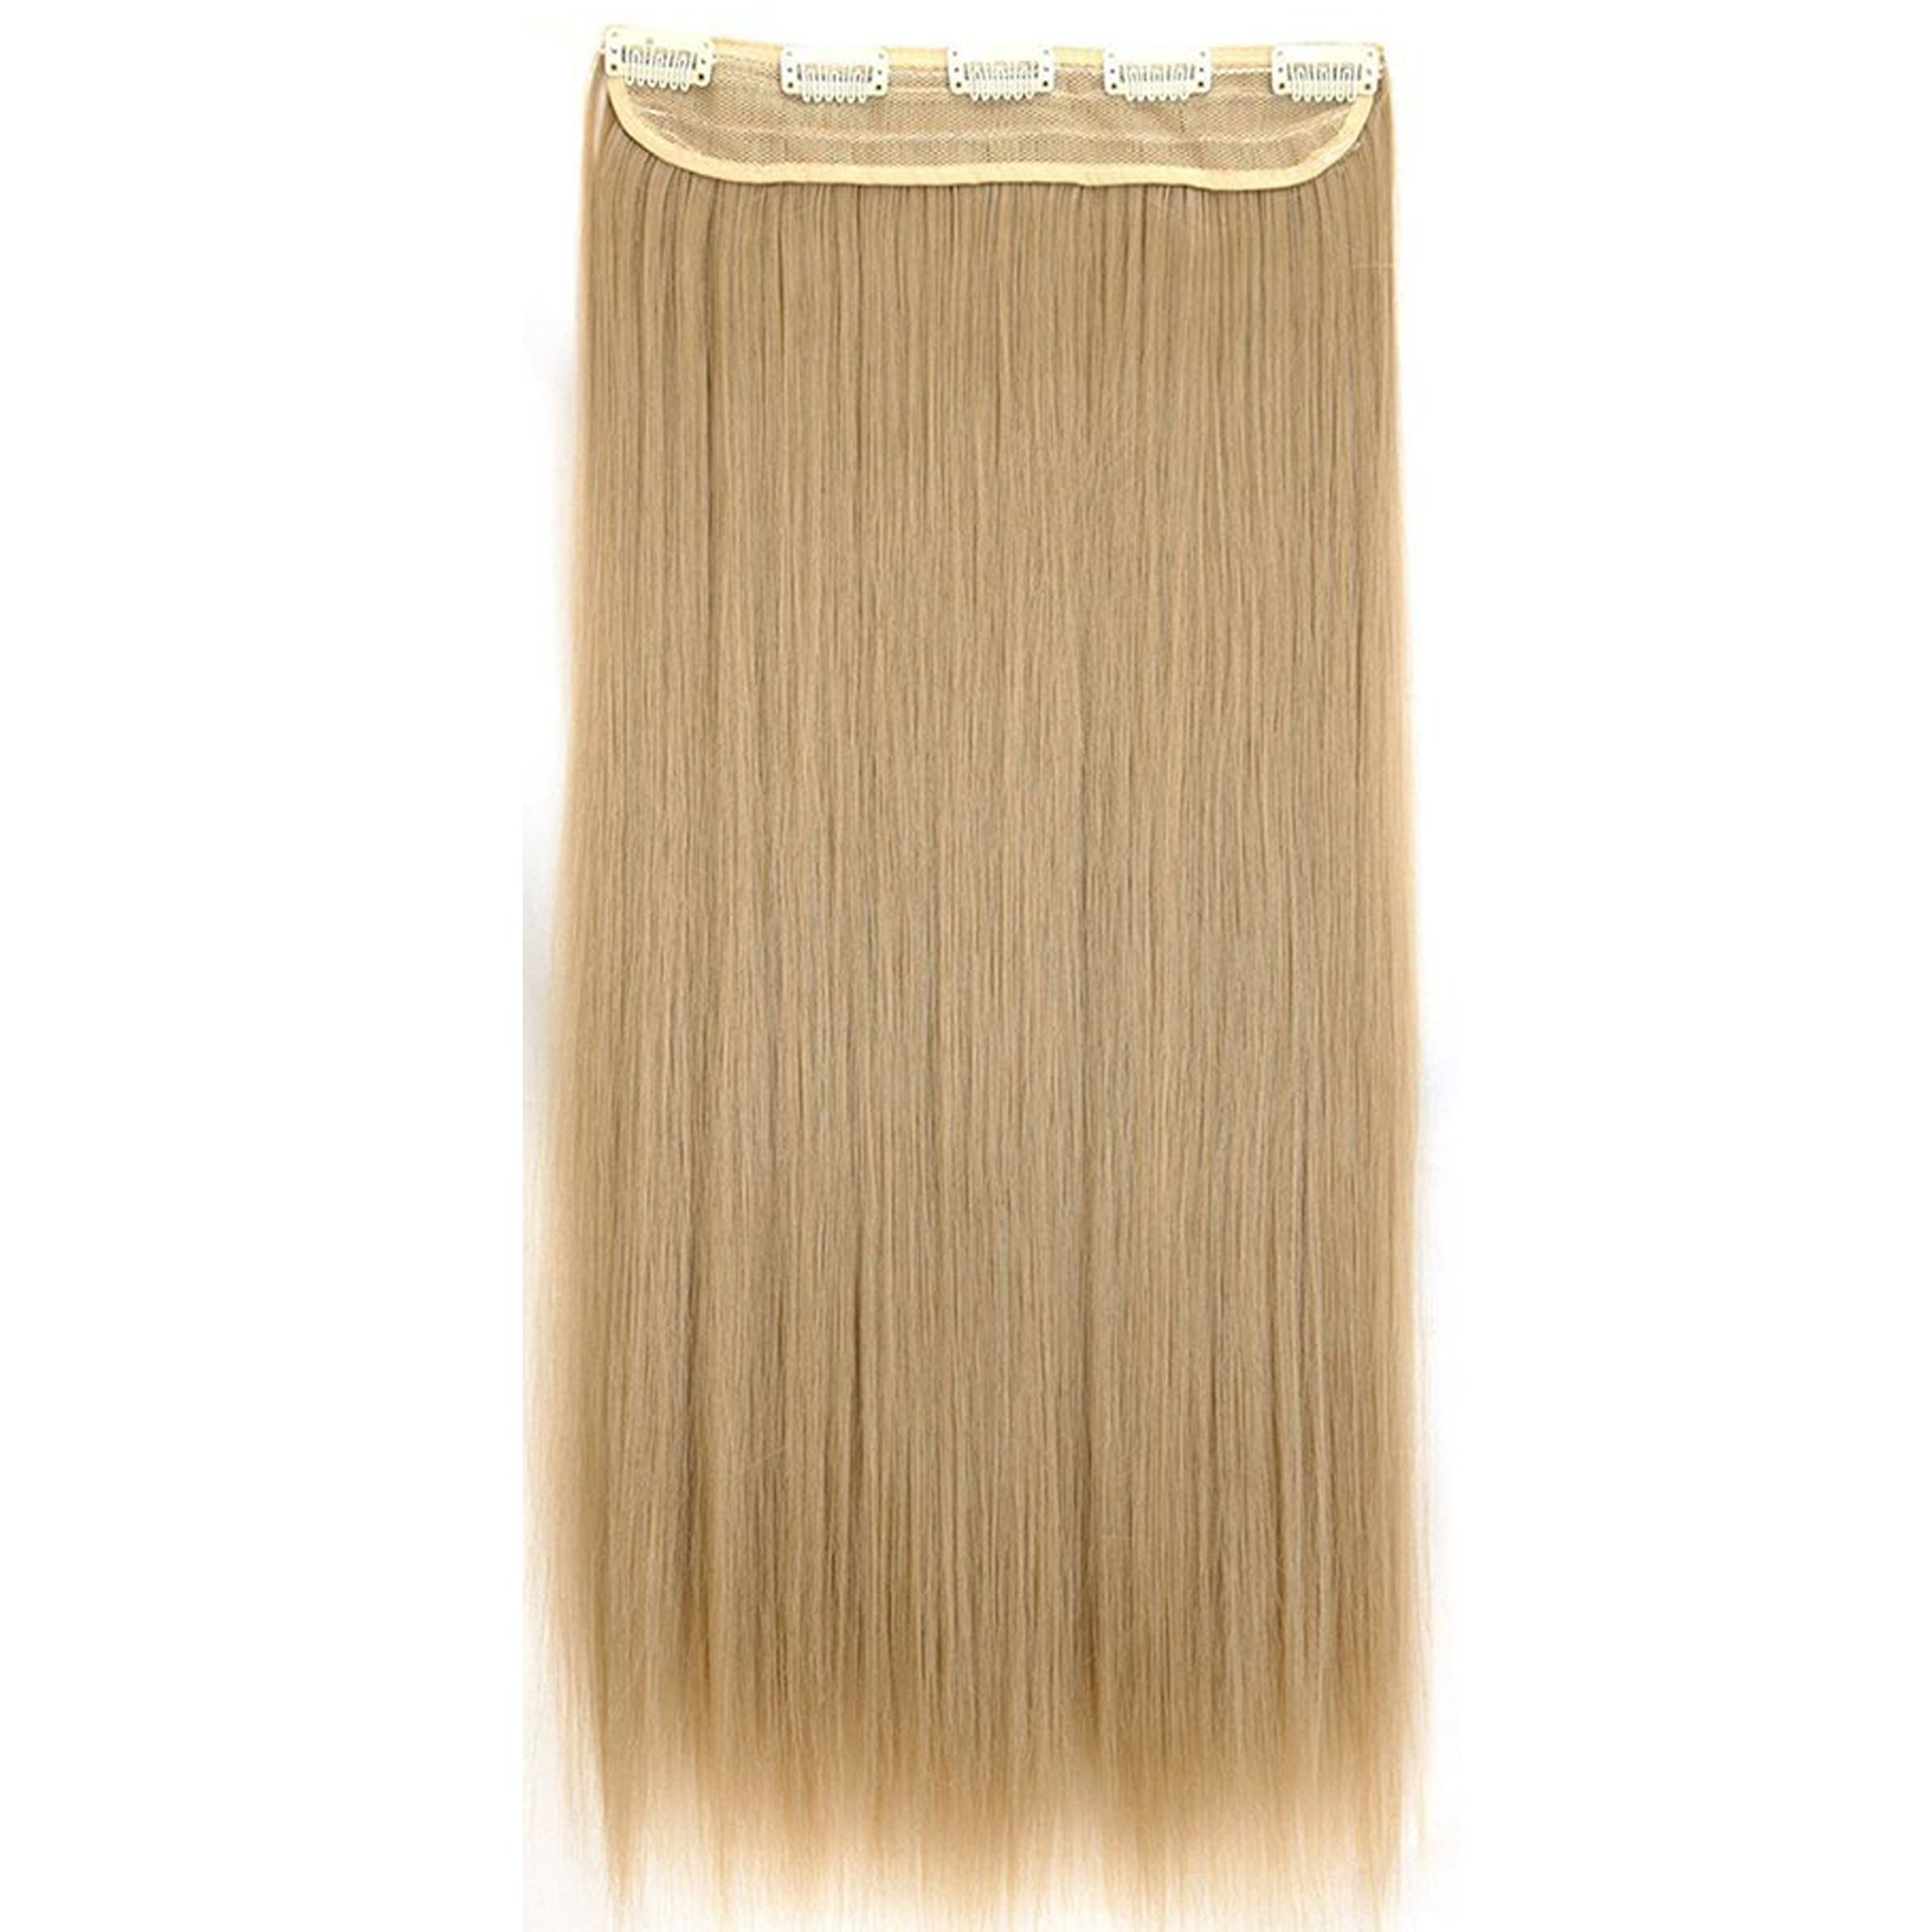 Amazon s noilite 17 curly ash blonde clip in hair extension s noilite trendy 2426 straight curly 34 full head pmusecretfo Gallery